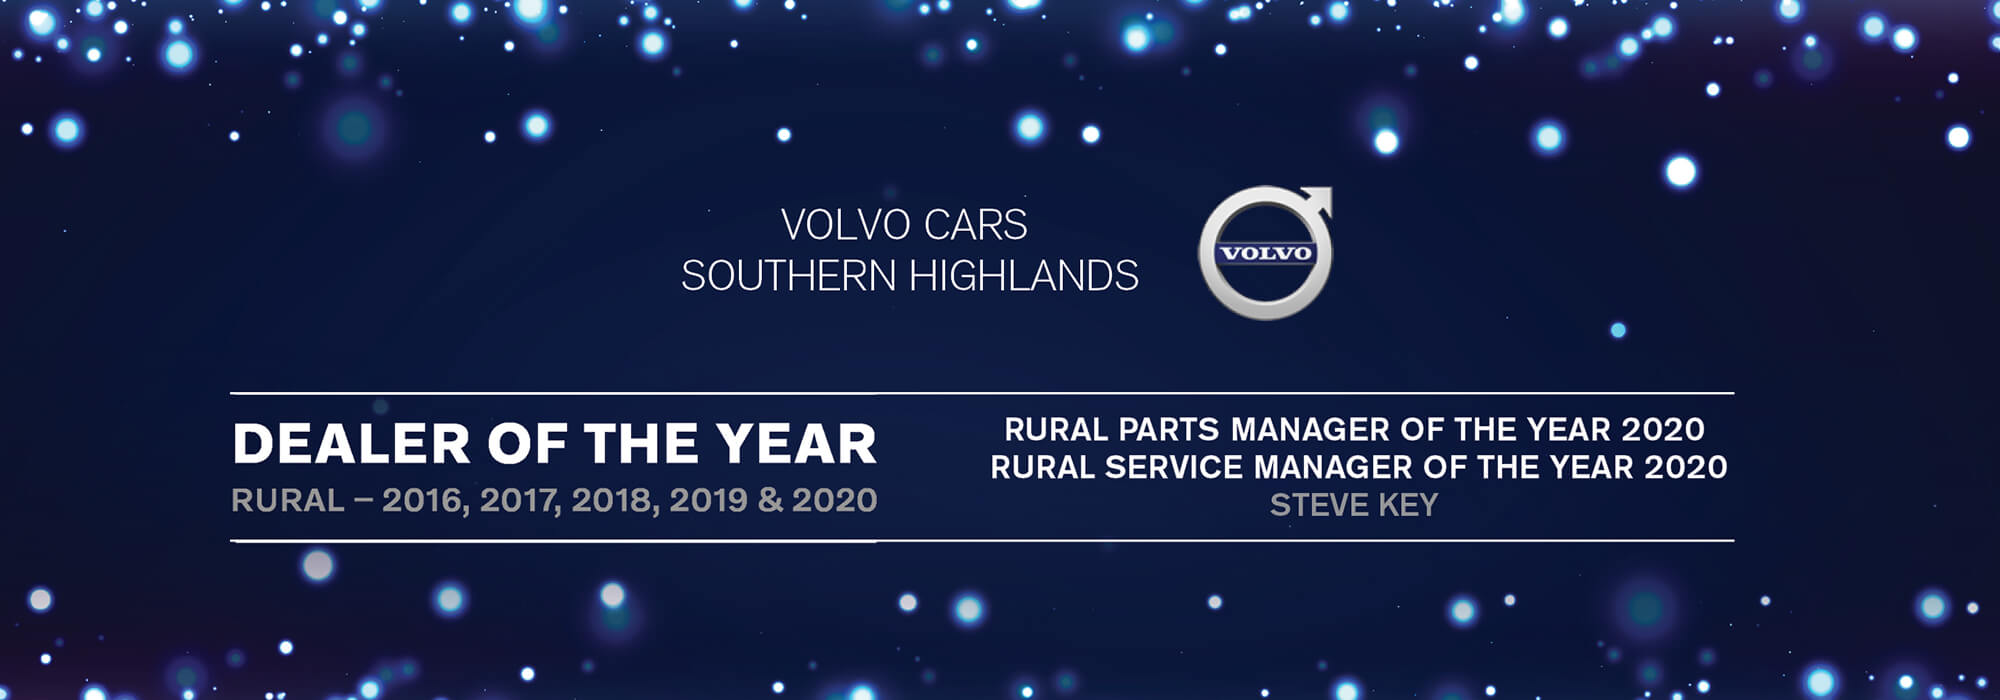 Volvo Cars Southern Highlands. Dealer of the Year. Rural 2016, 2017, 2019 and 2020